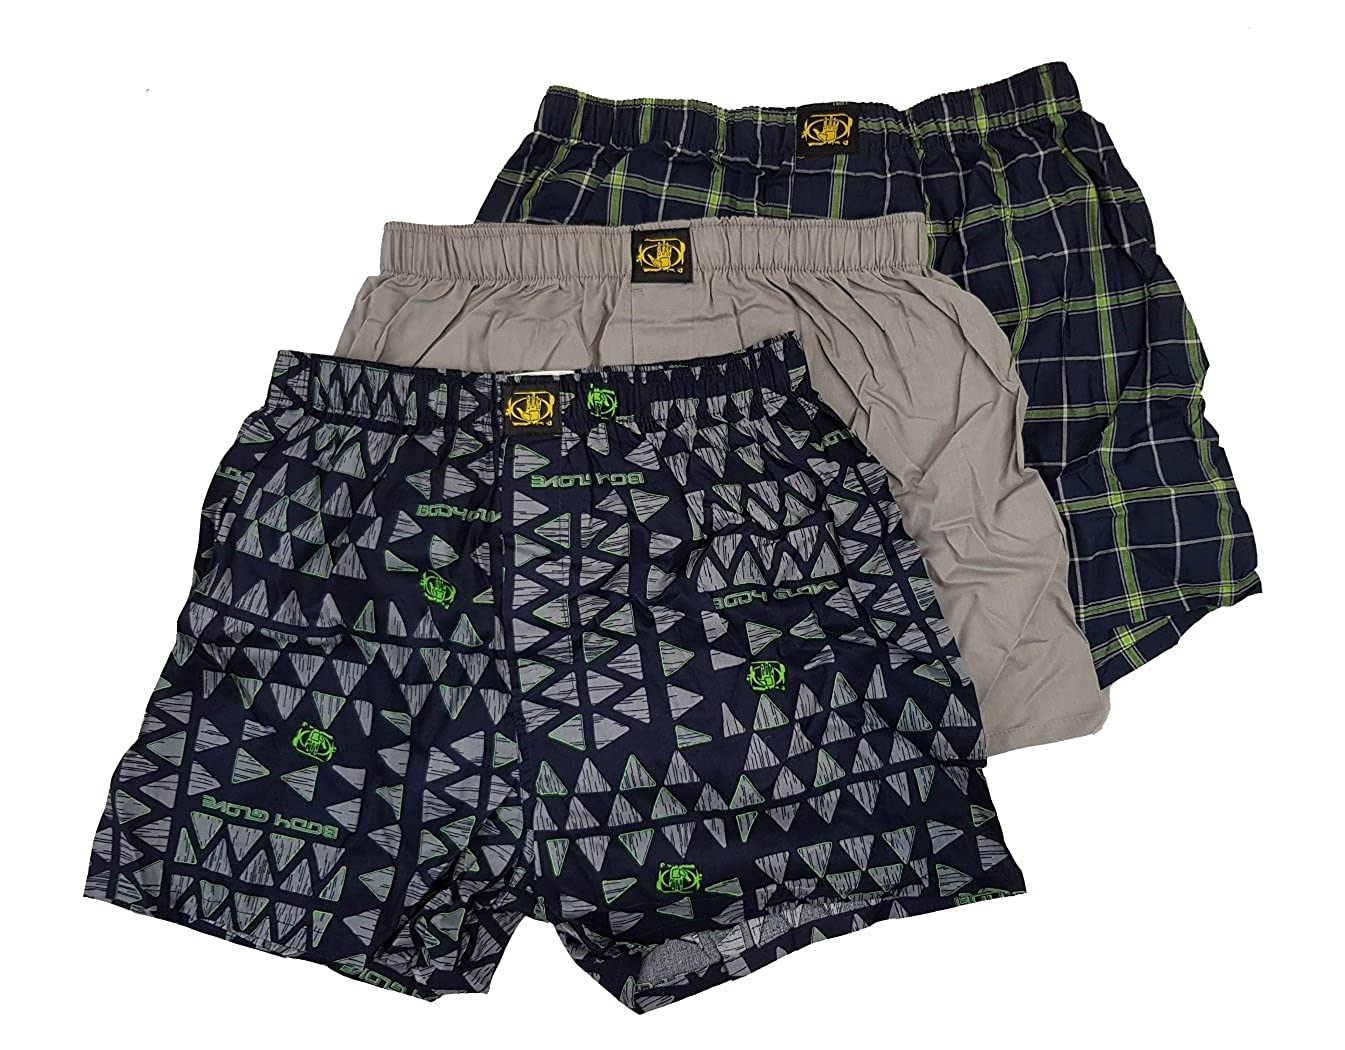 Body Glove Men's 3-Pack Woven Boxers Small)